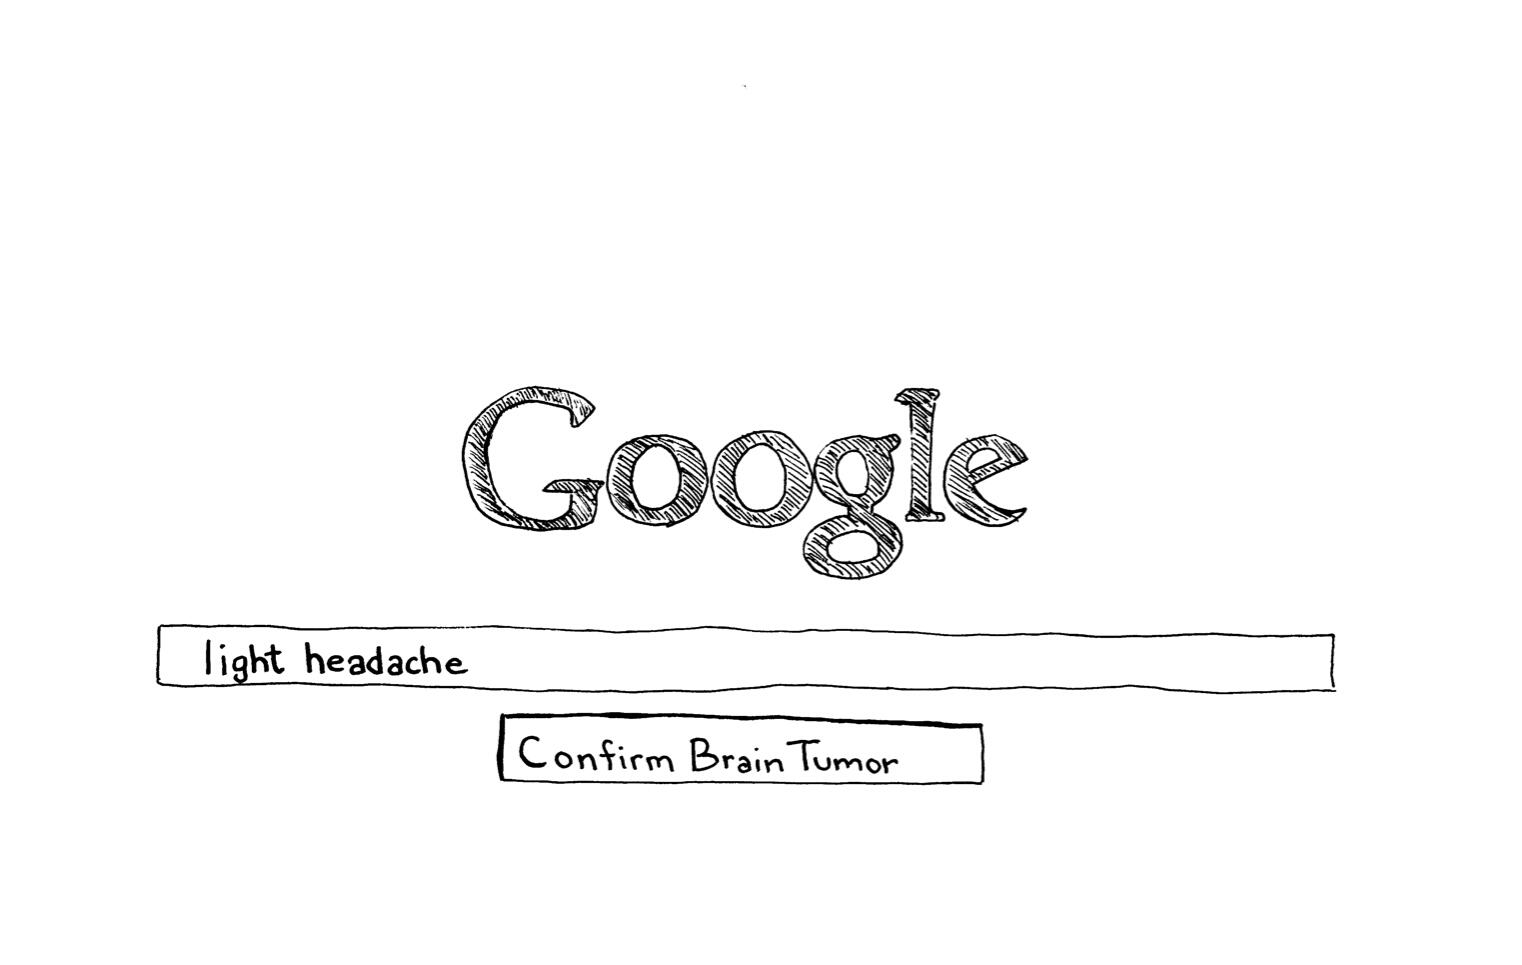 Twitter / TheNextWeb: Never Google your headache ...